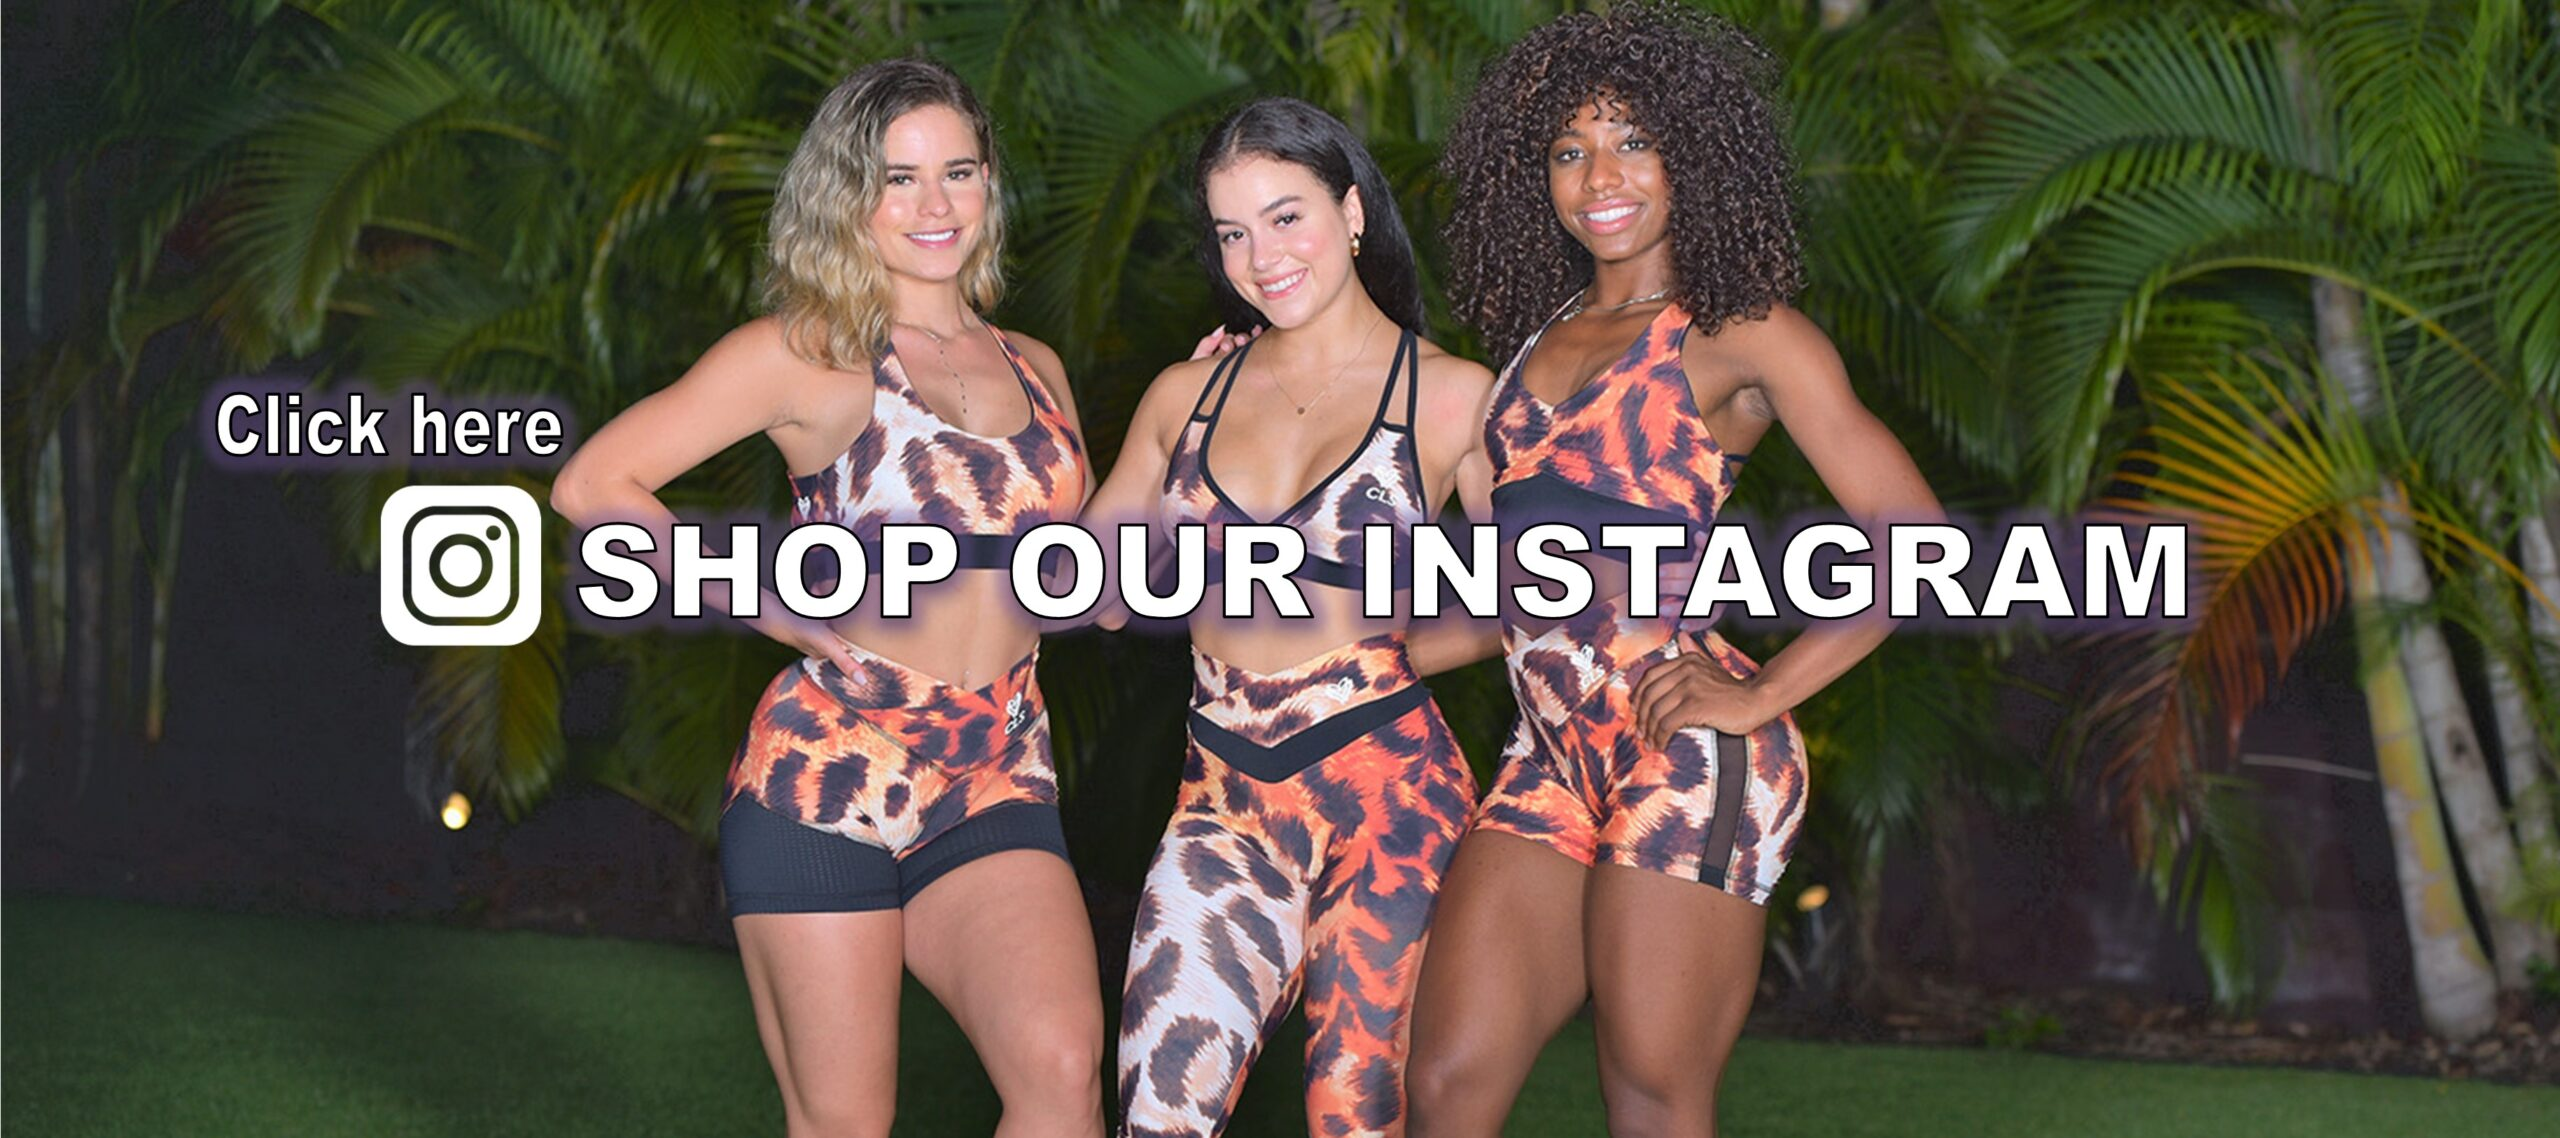 https://www.clssportswear.com/wp-content/uploads/2020/11/Shop-our-Instagram-Banner_NEW-scaled.jpg